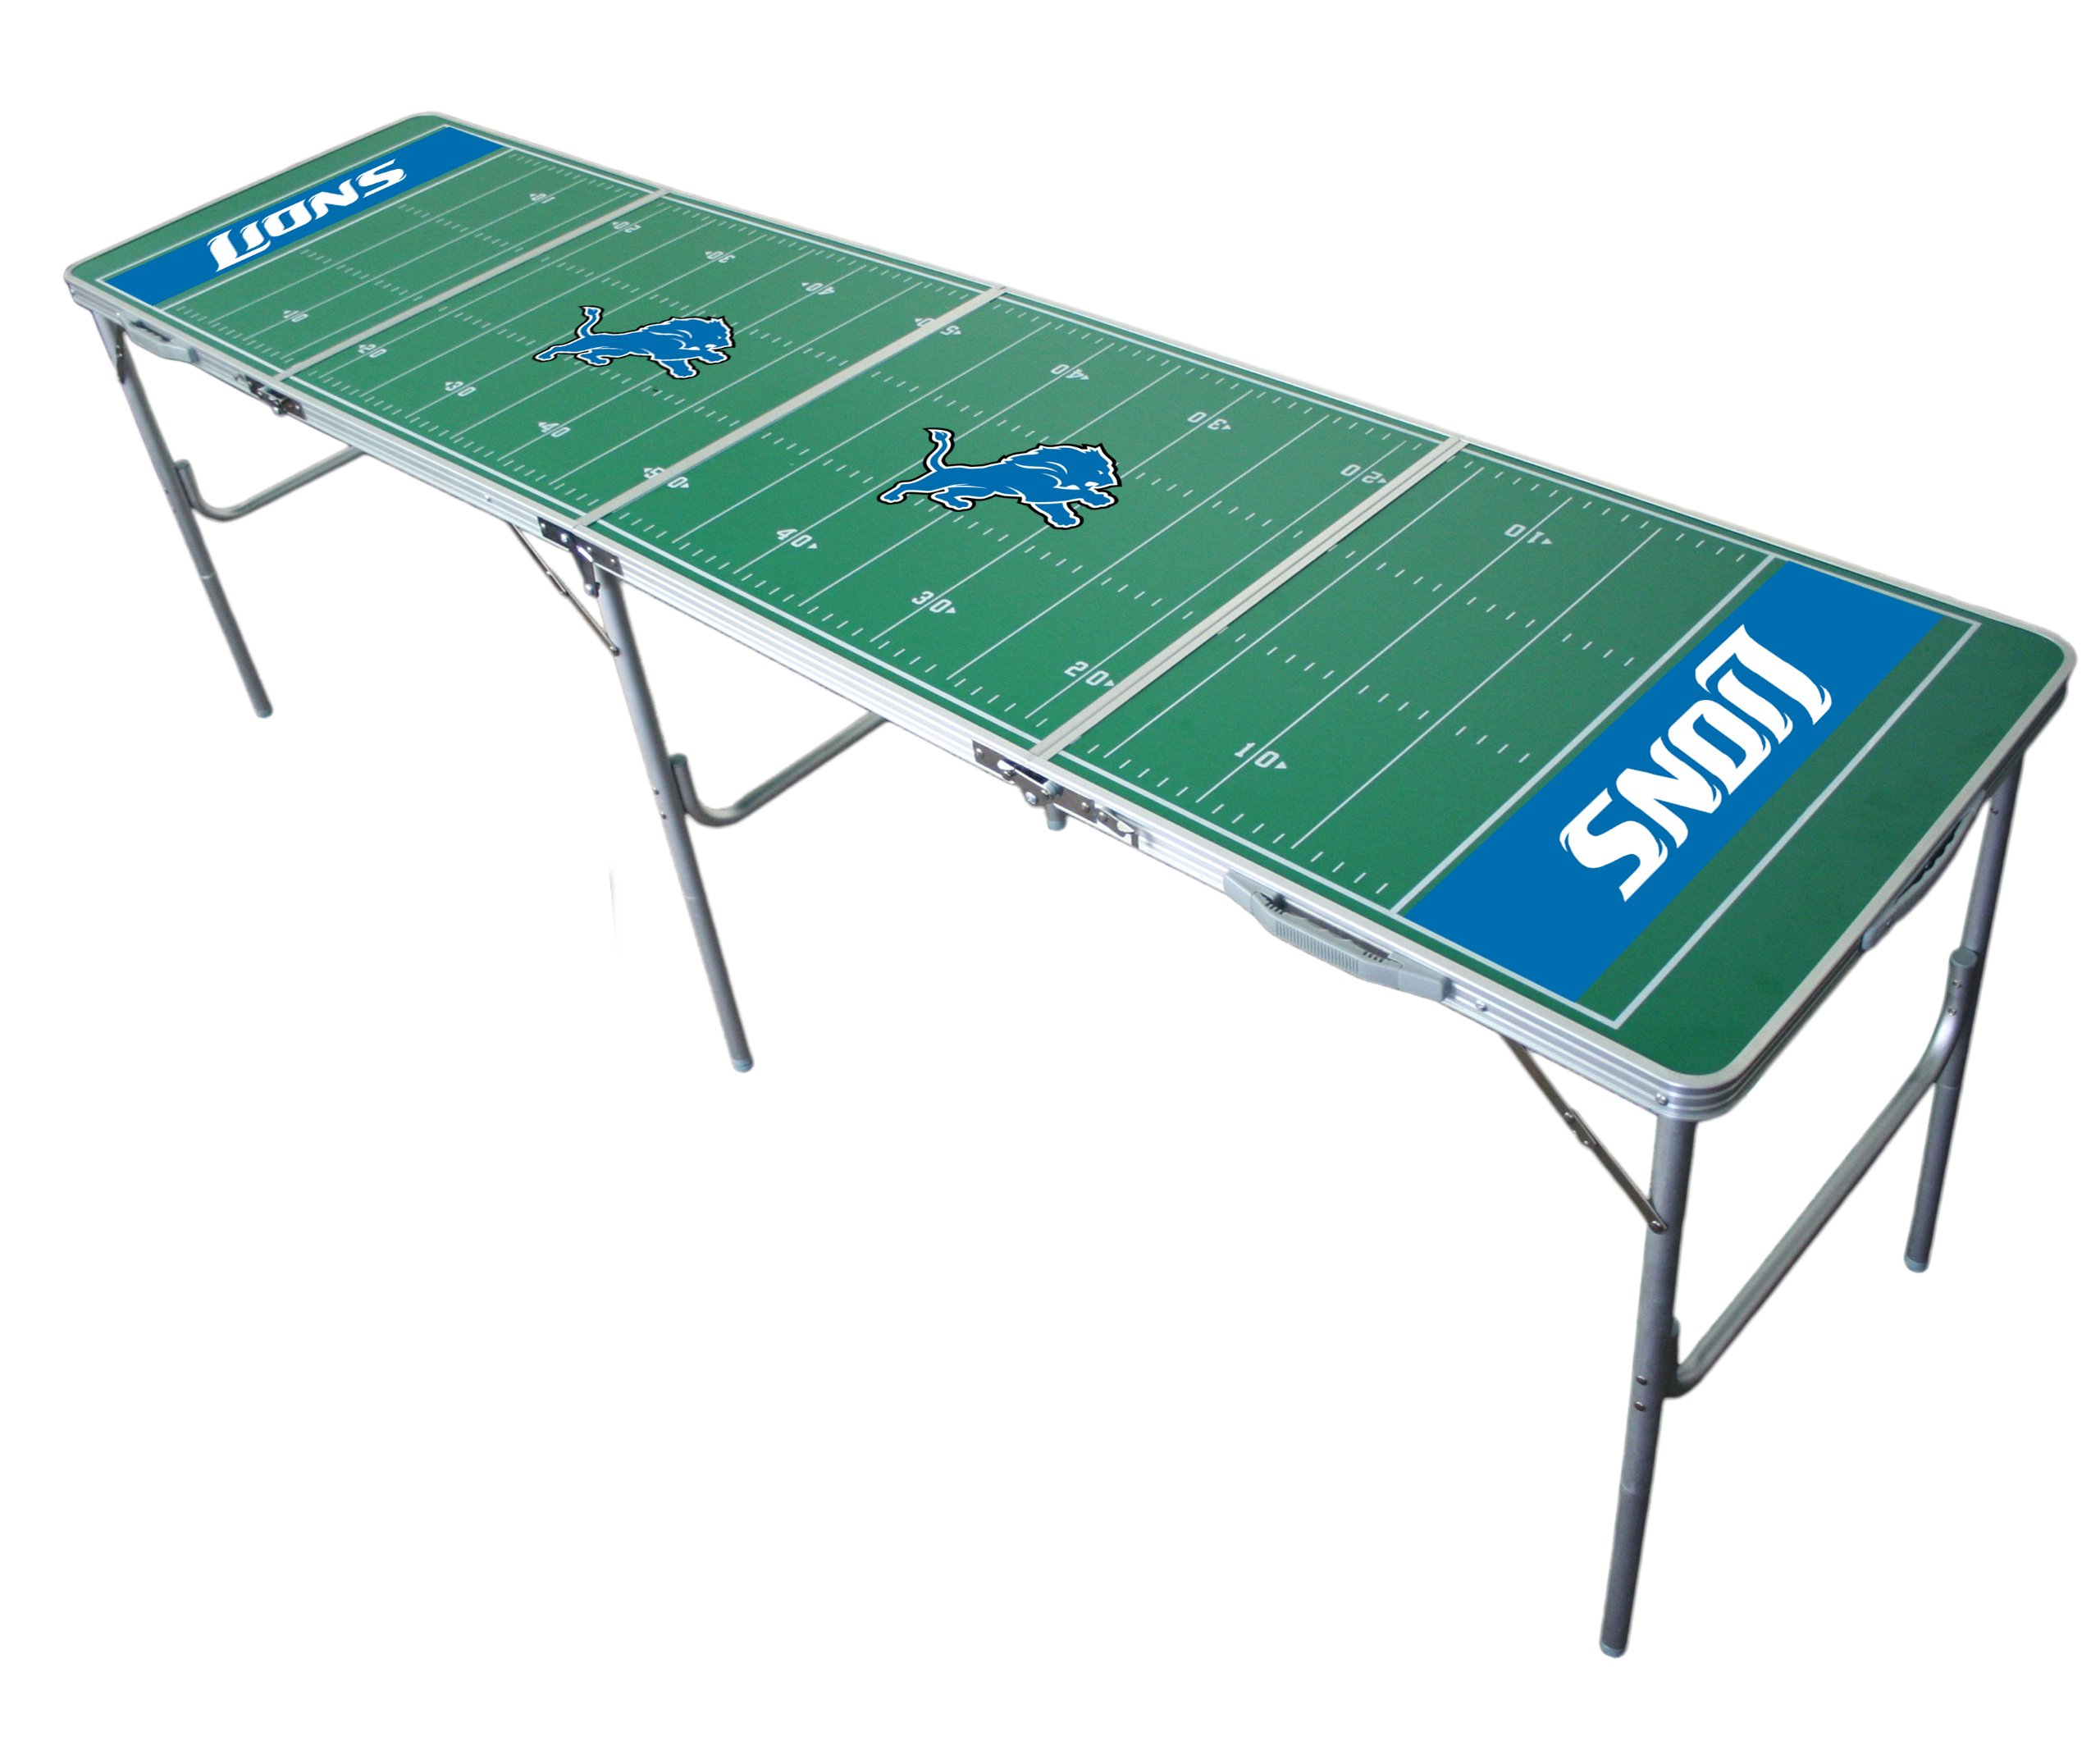 Detroit Lions 2x8 Tailgate Table by Wild Sports